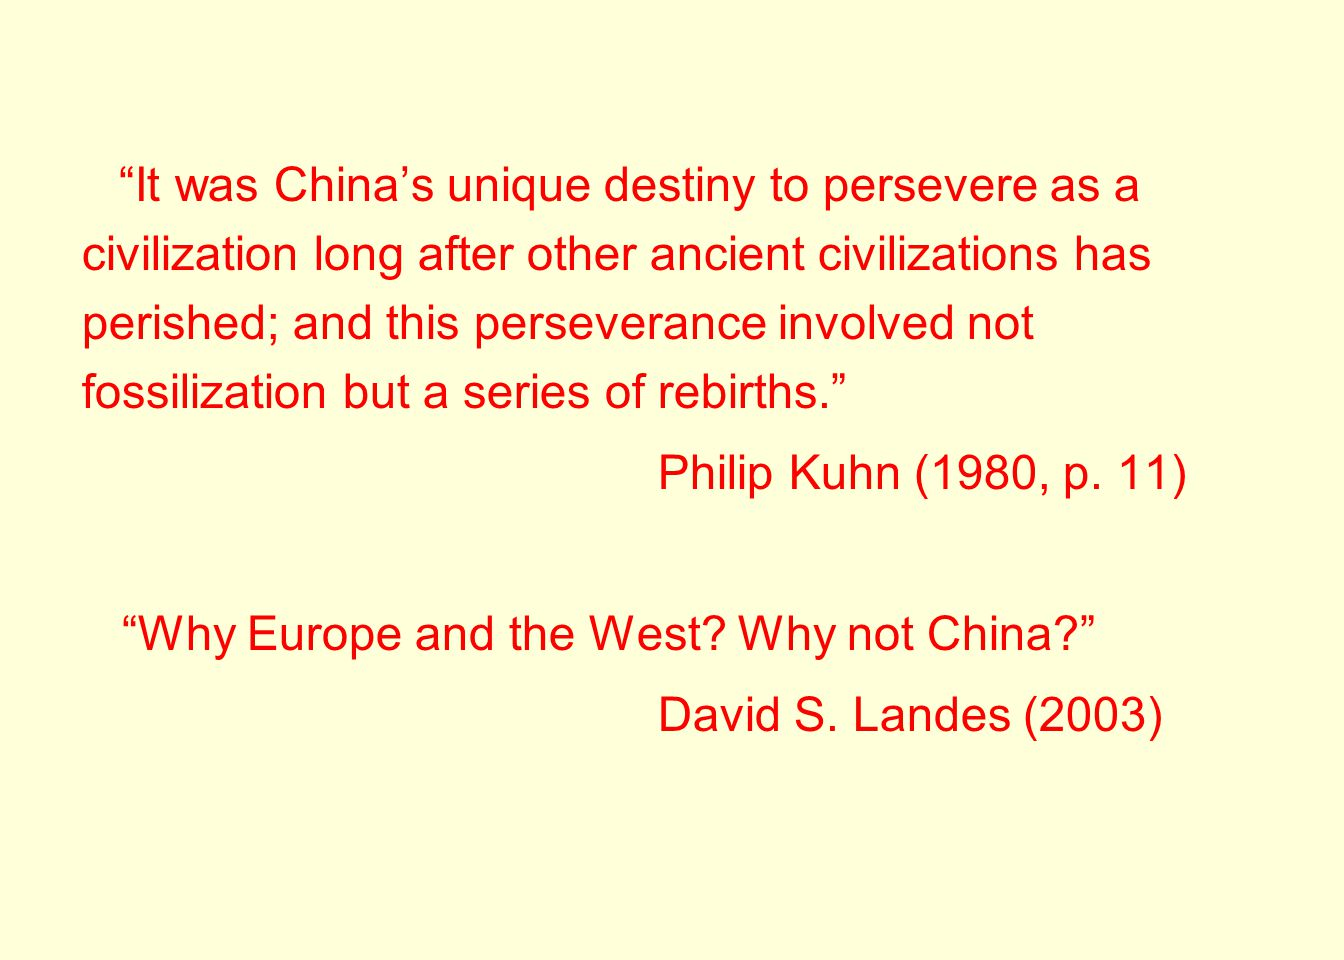 Why Europe and the West Why not China David S. Landes (2003)